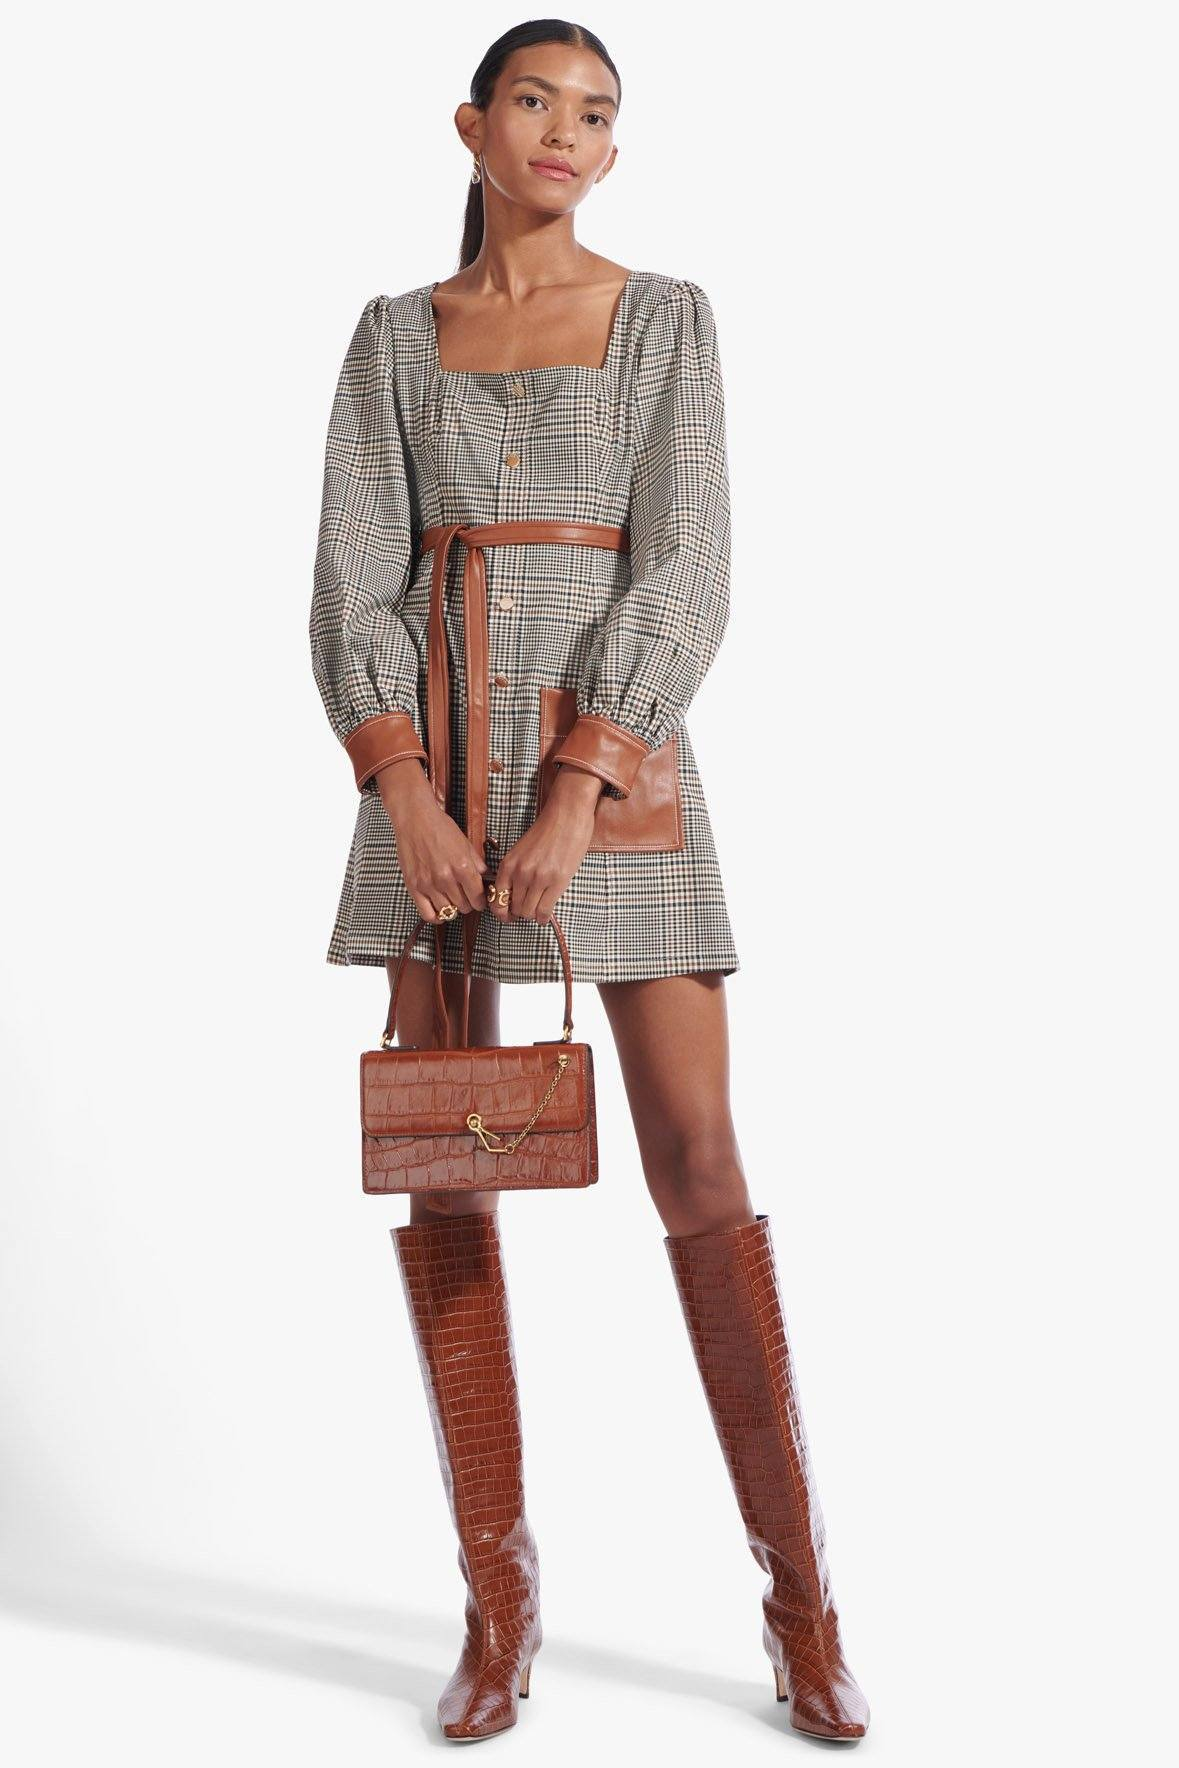 STAUD Glen Plaid Oz Dress